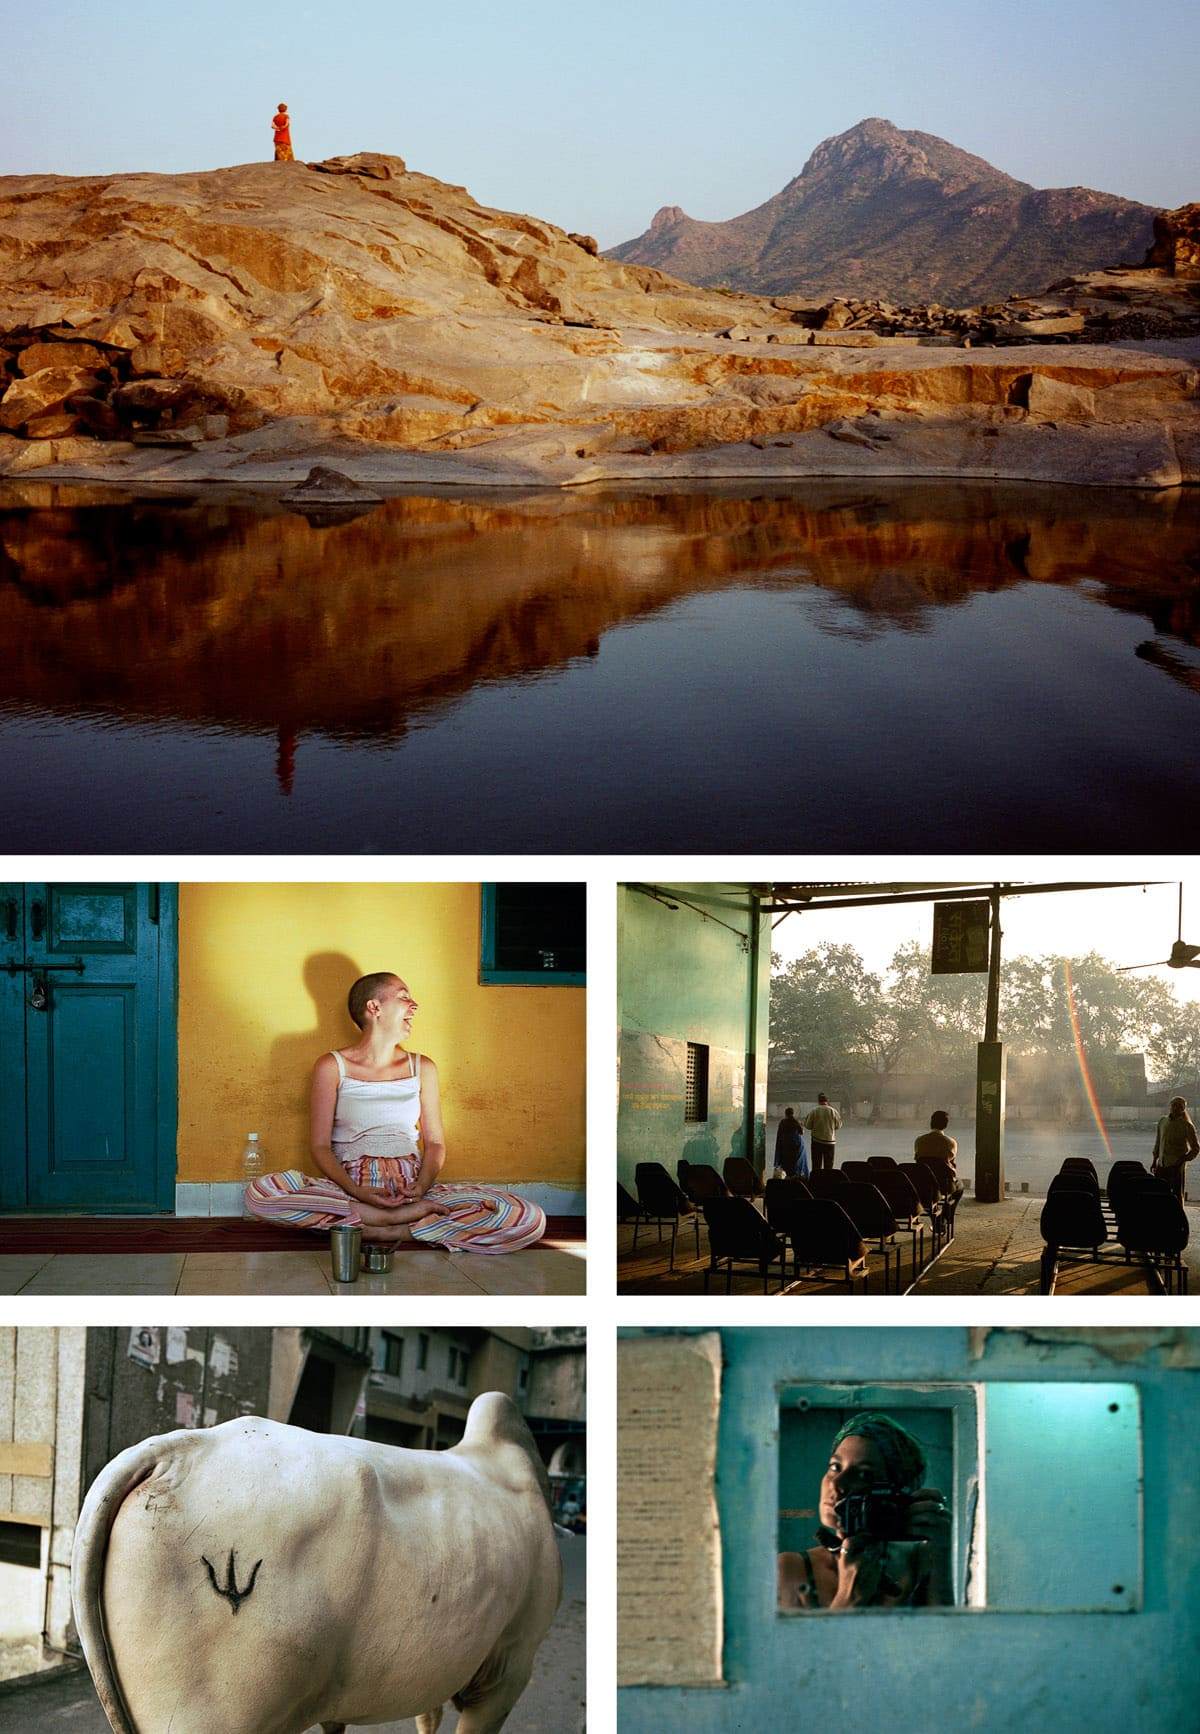 Collage of personal travel photographs in India.